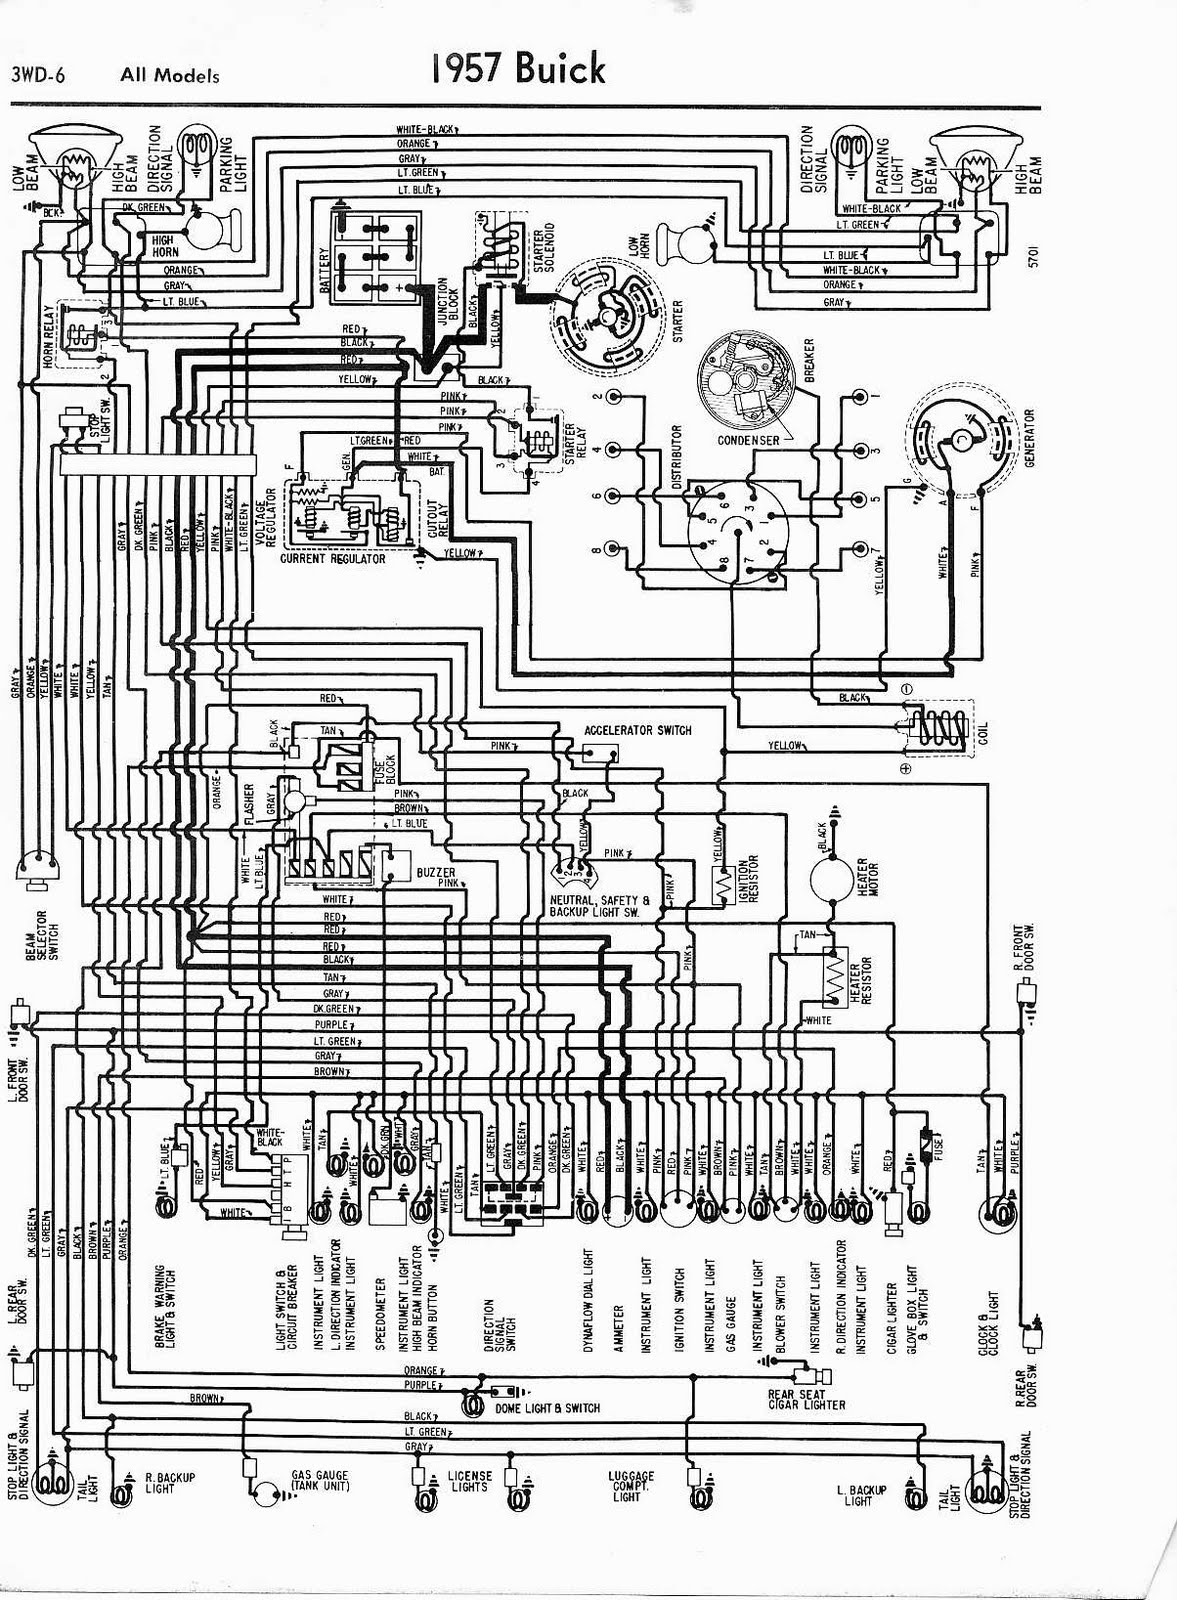 ford wiring diagrams free wiring diagrams weebly com buick wiring diagrams free free auto wiring diagram: 1957 buick all models wiring diagram #11